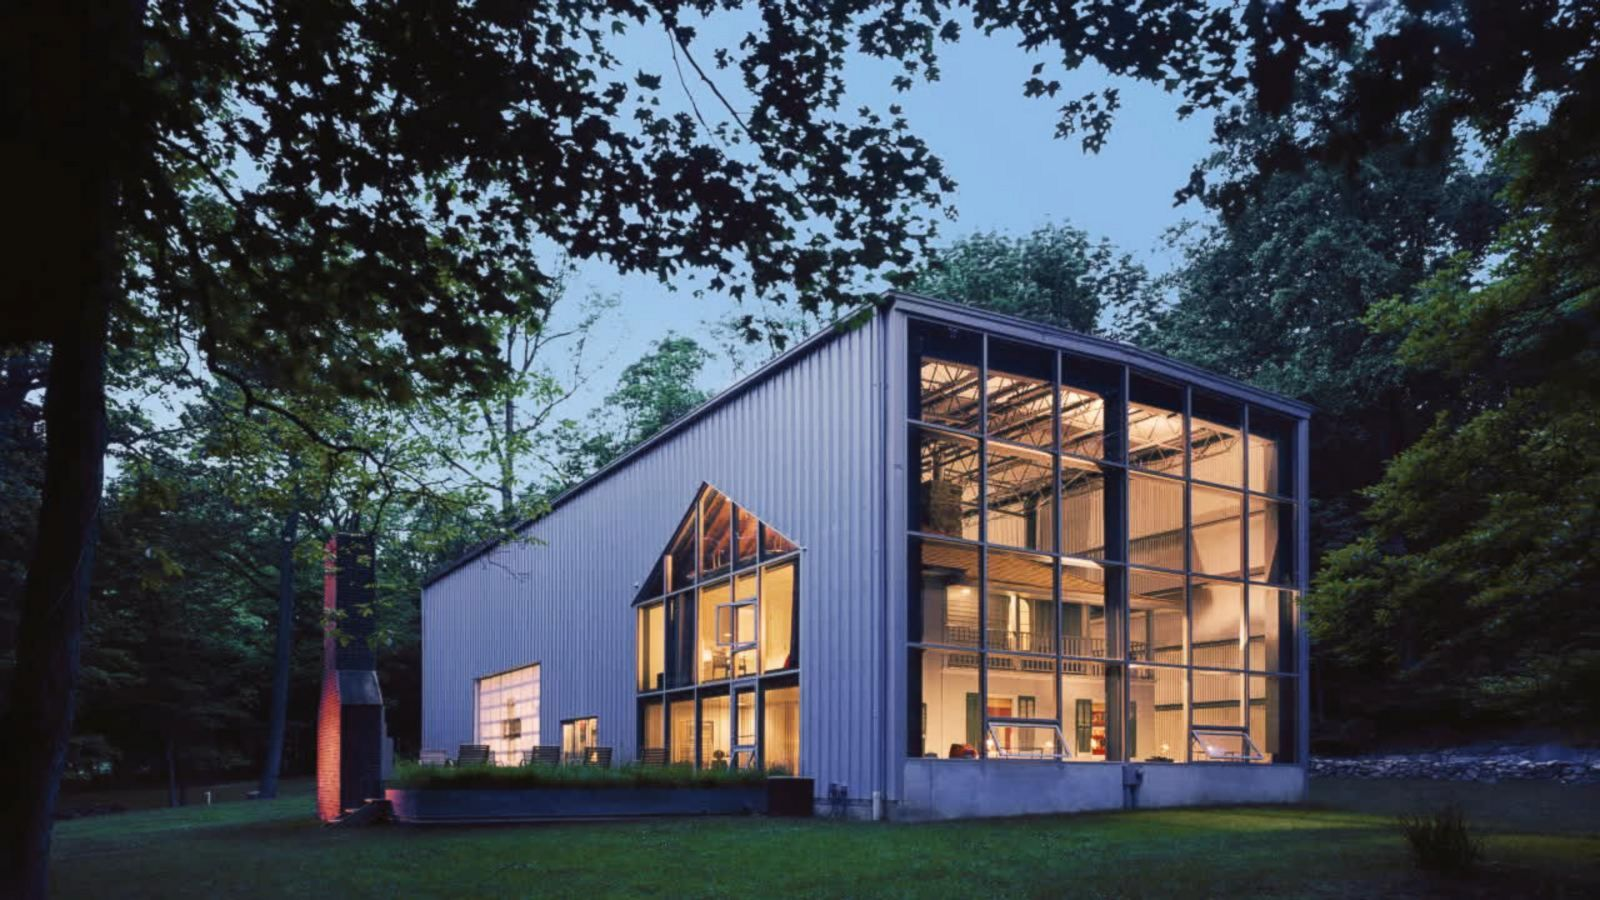 VIDEO: This One-of-a-Kind House is Inside an Airplane Hangar